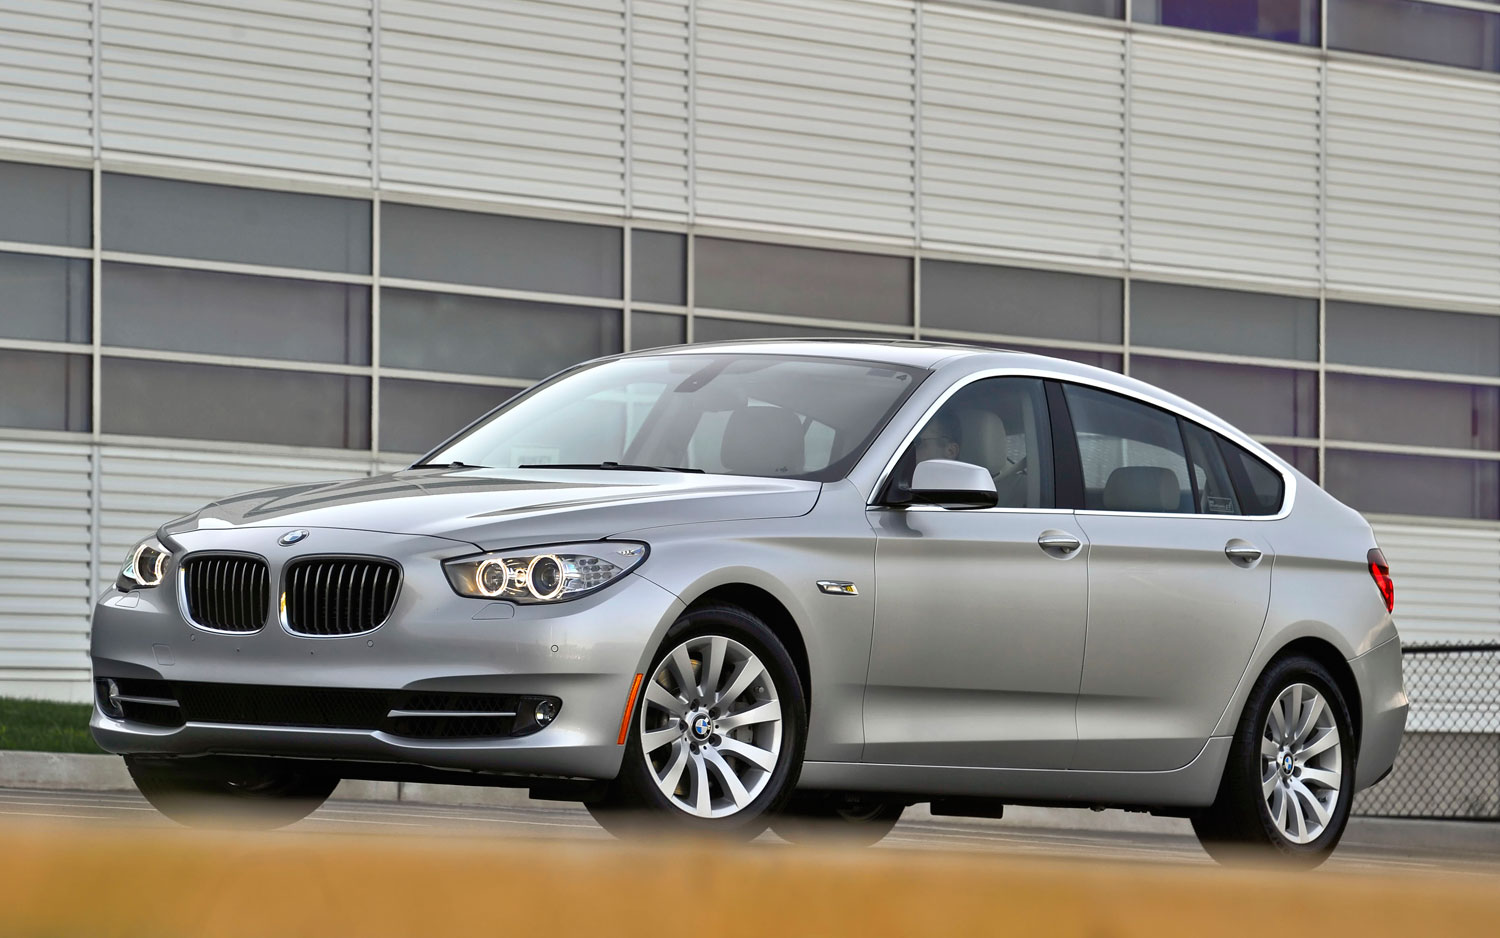 Slow Sales Of BMW Series Gran Turismo Disappoint BMW Exec - 2011 bmw 535 gt